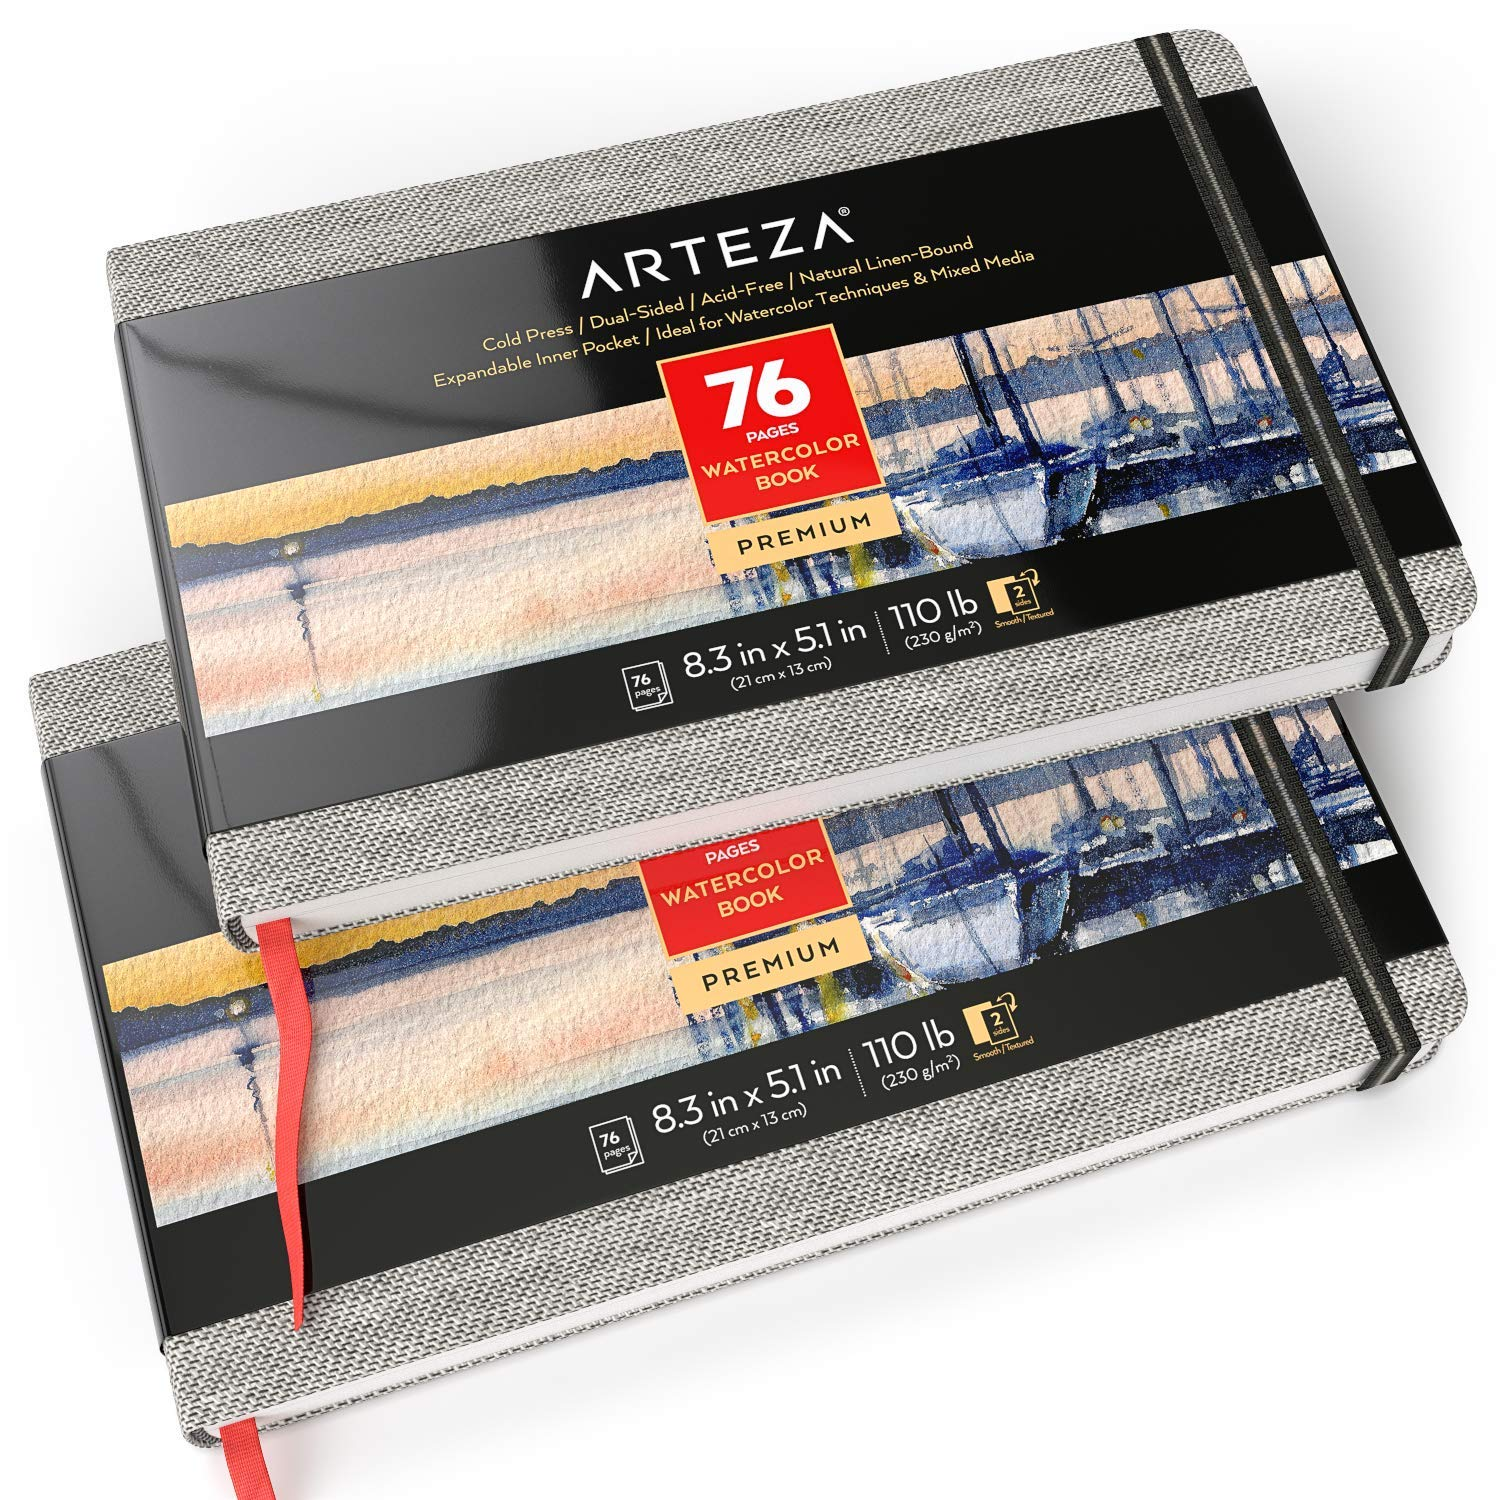 ARTEZA 5.1x8.3'' Watercolor Book, Pack of 2, 76 Pages per Pad, 110lb/230gsm, Cold Pressed Paper, Linen Bound with Bookmark Ribbon and Elastic Strap, for Watercolor Techniques and Mixed Media